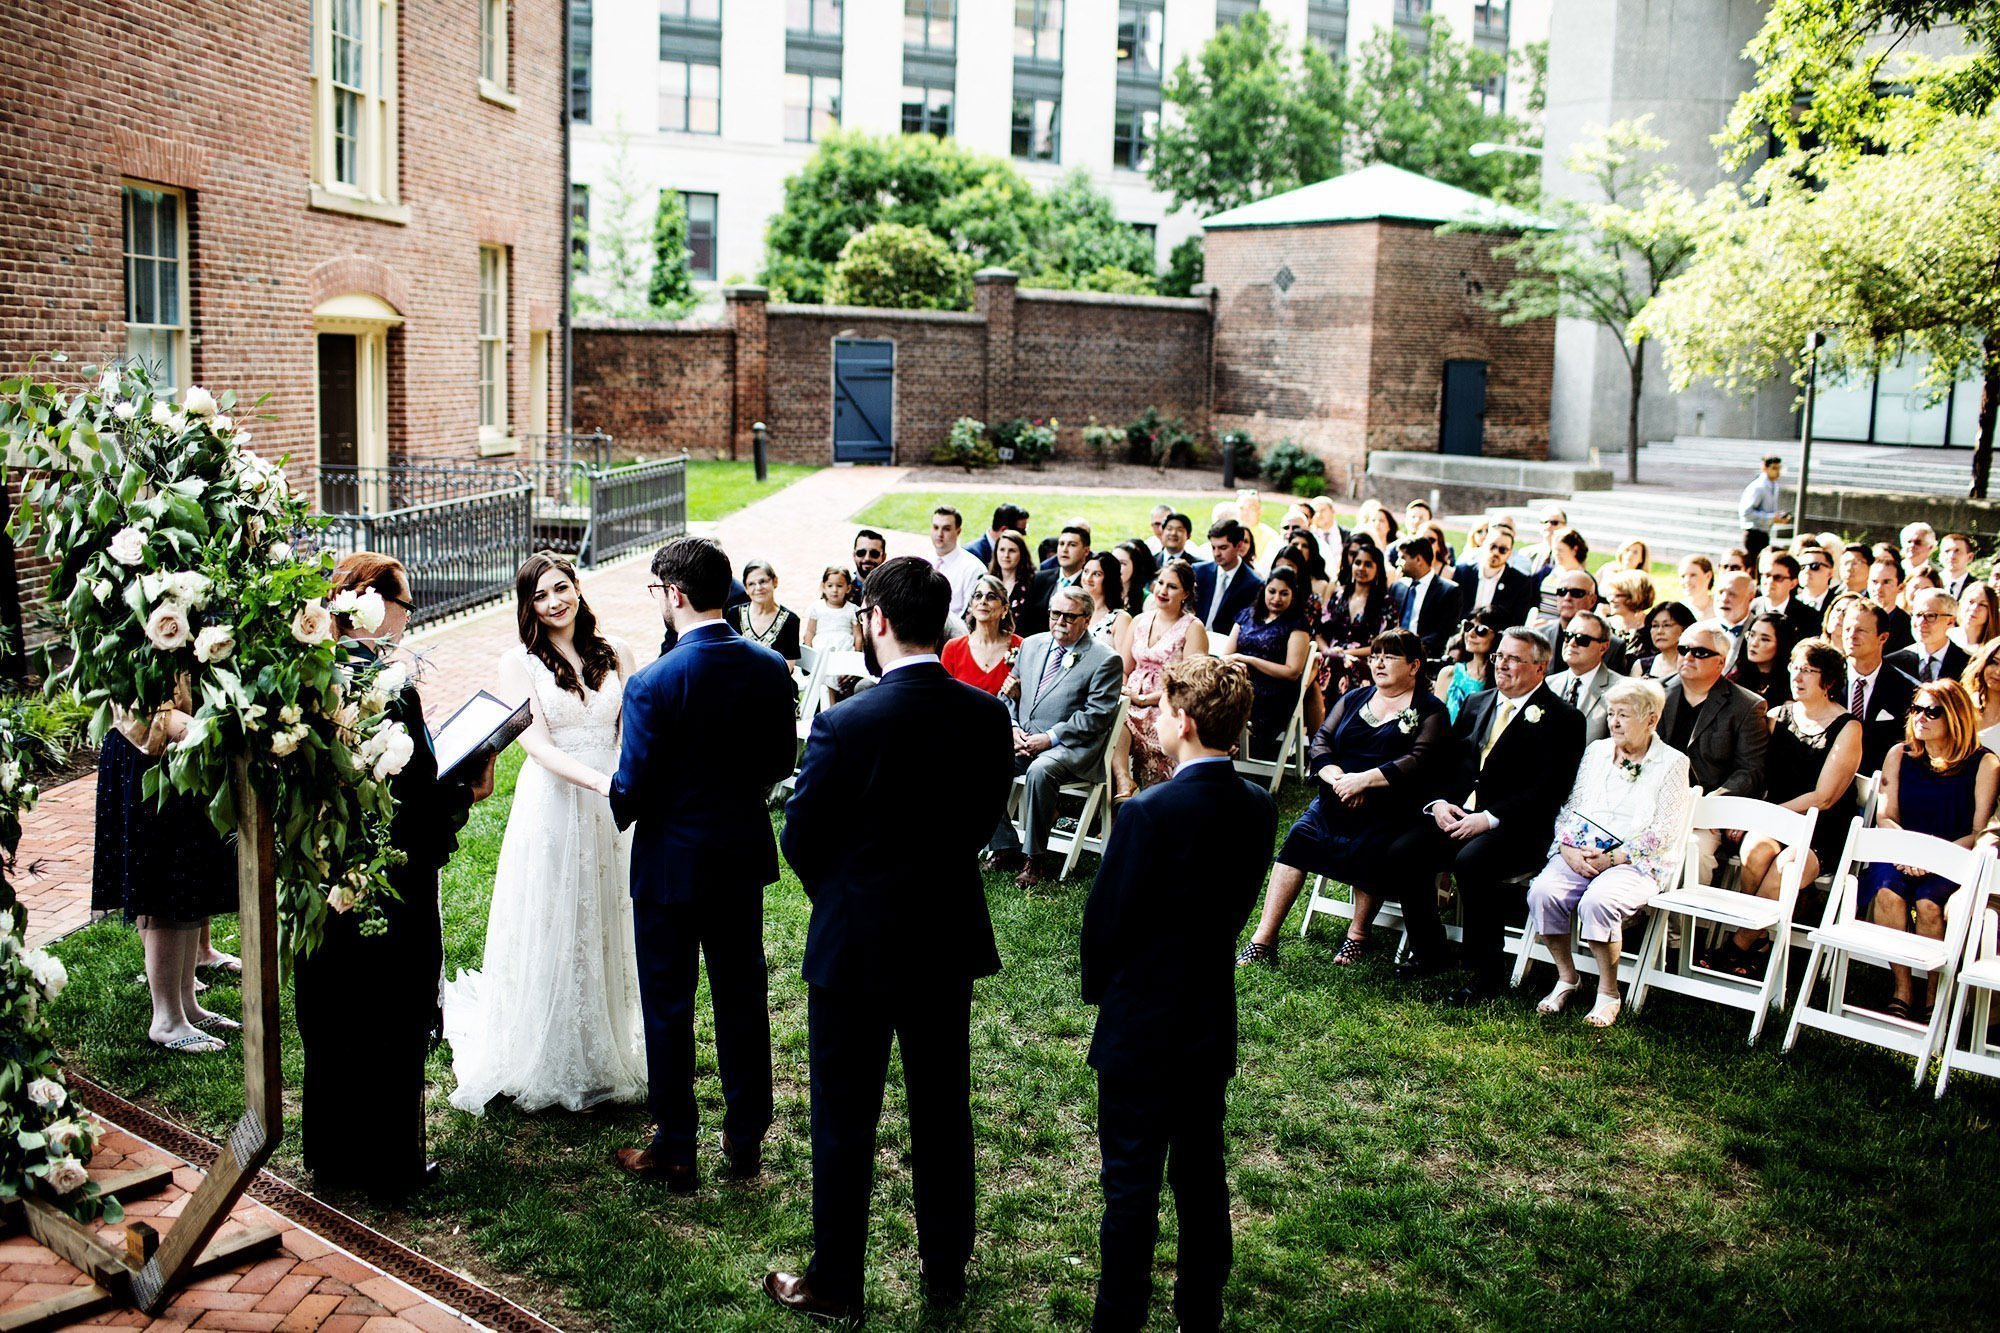 American Institute of Architects Wedding Ceremony  I  Guests watch the wedding ceremony in Washington, DC.